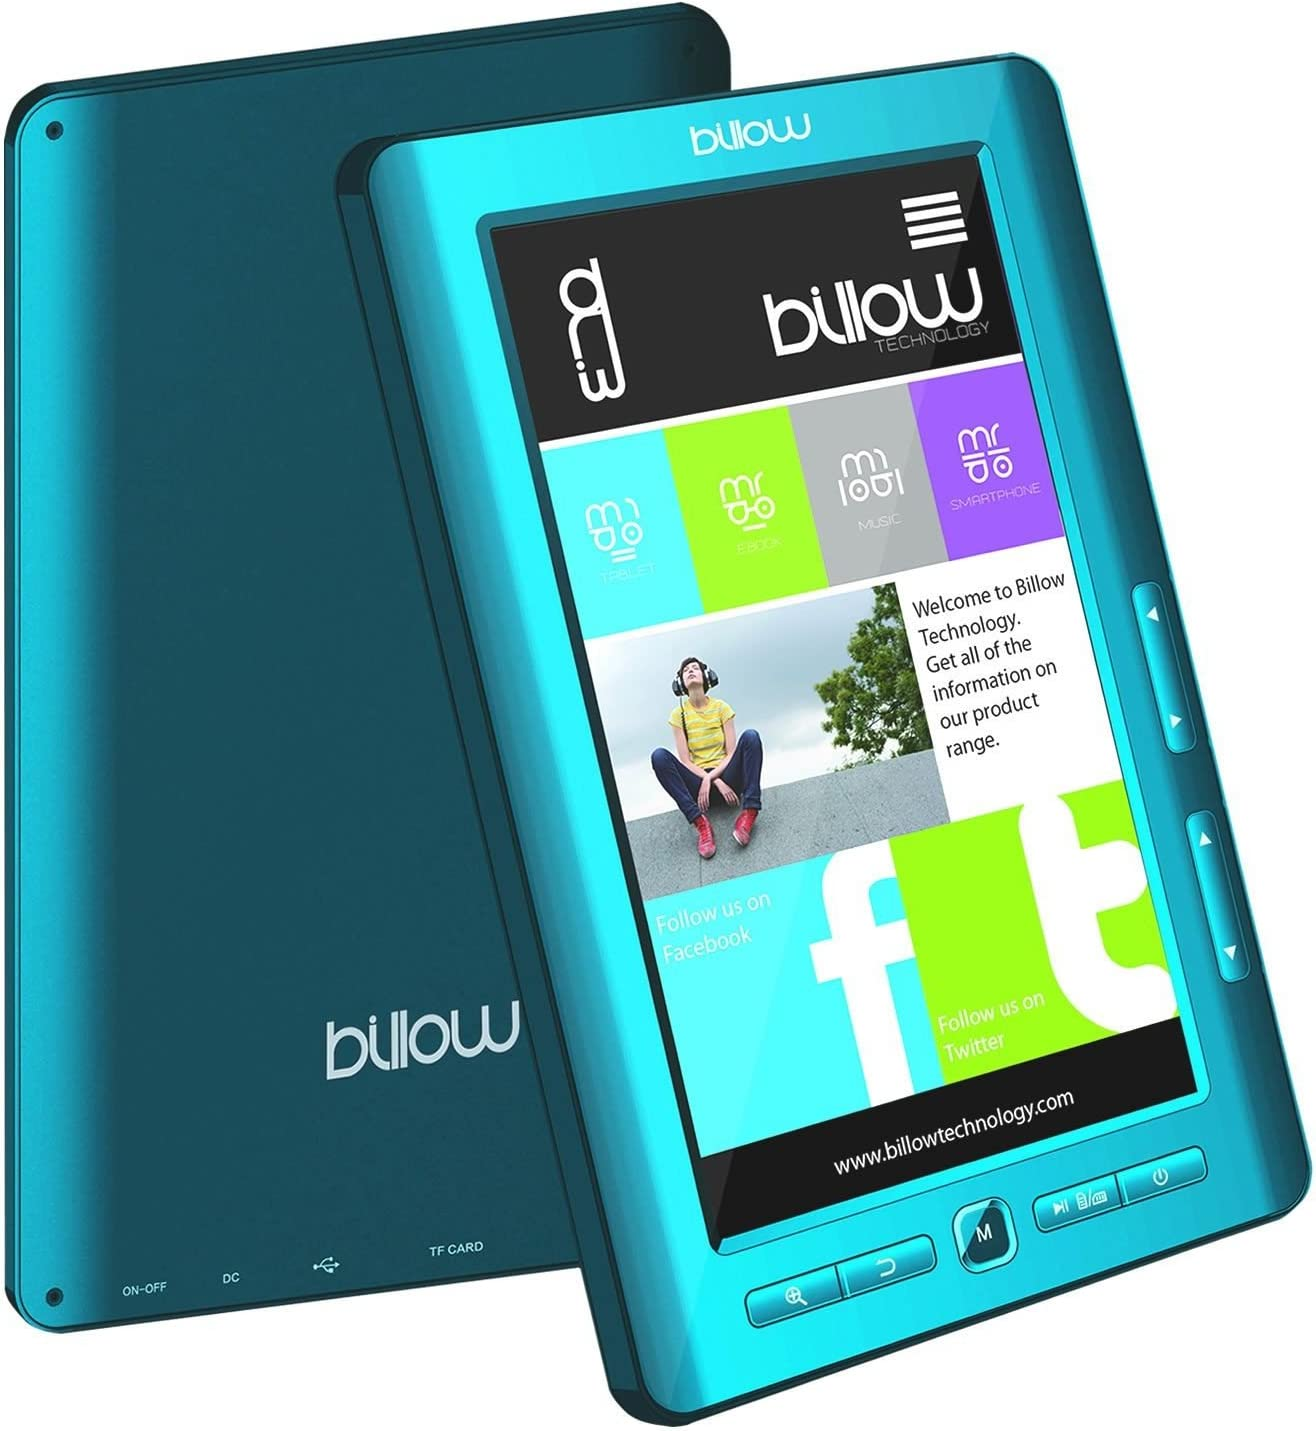 BILLOW Libro ELECTRONICO Multimedia Pantalla DE 7 TFT Color Azul ...